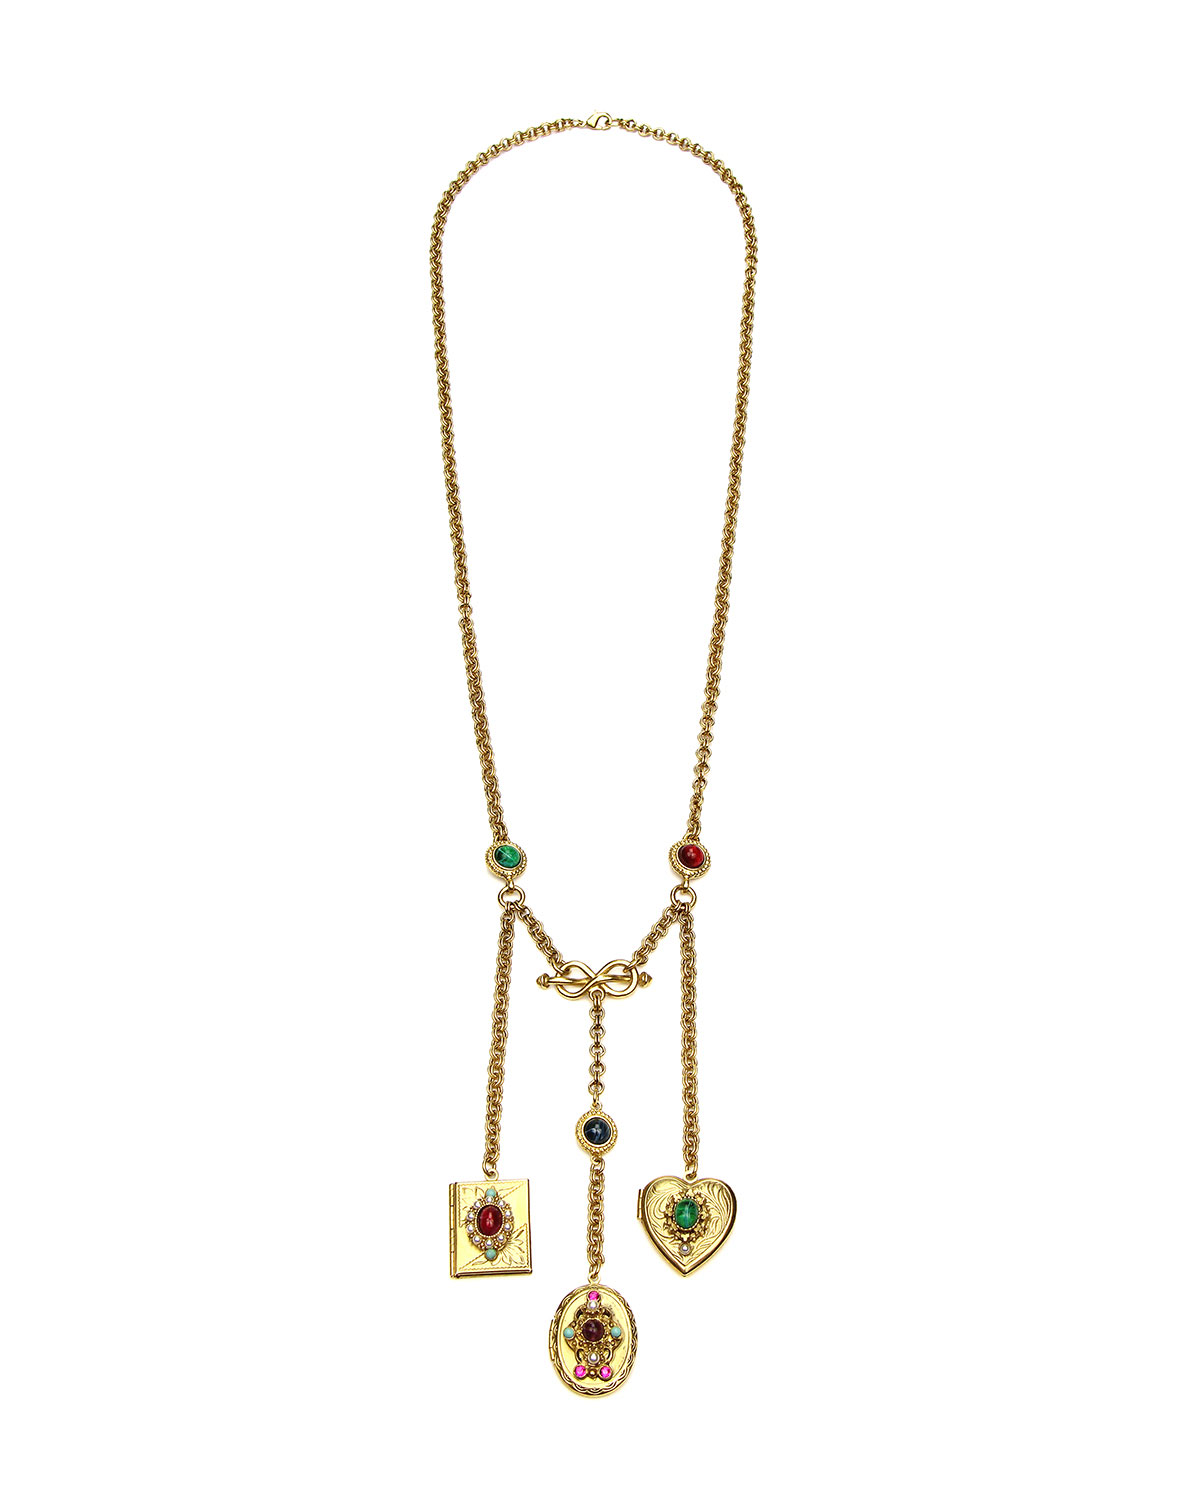 Ben-Amun three-locket pendant necklace. 24-karat yellow gold electroplated hardware. Three lockets: Rectangular, oval and heart lockets. Glass stones, turquoise-hued stone and glass pearls. Approx. 27\